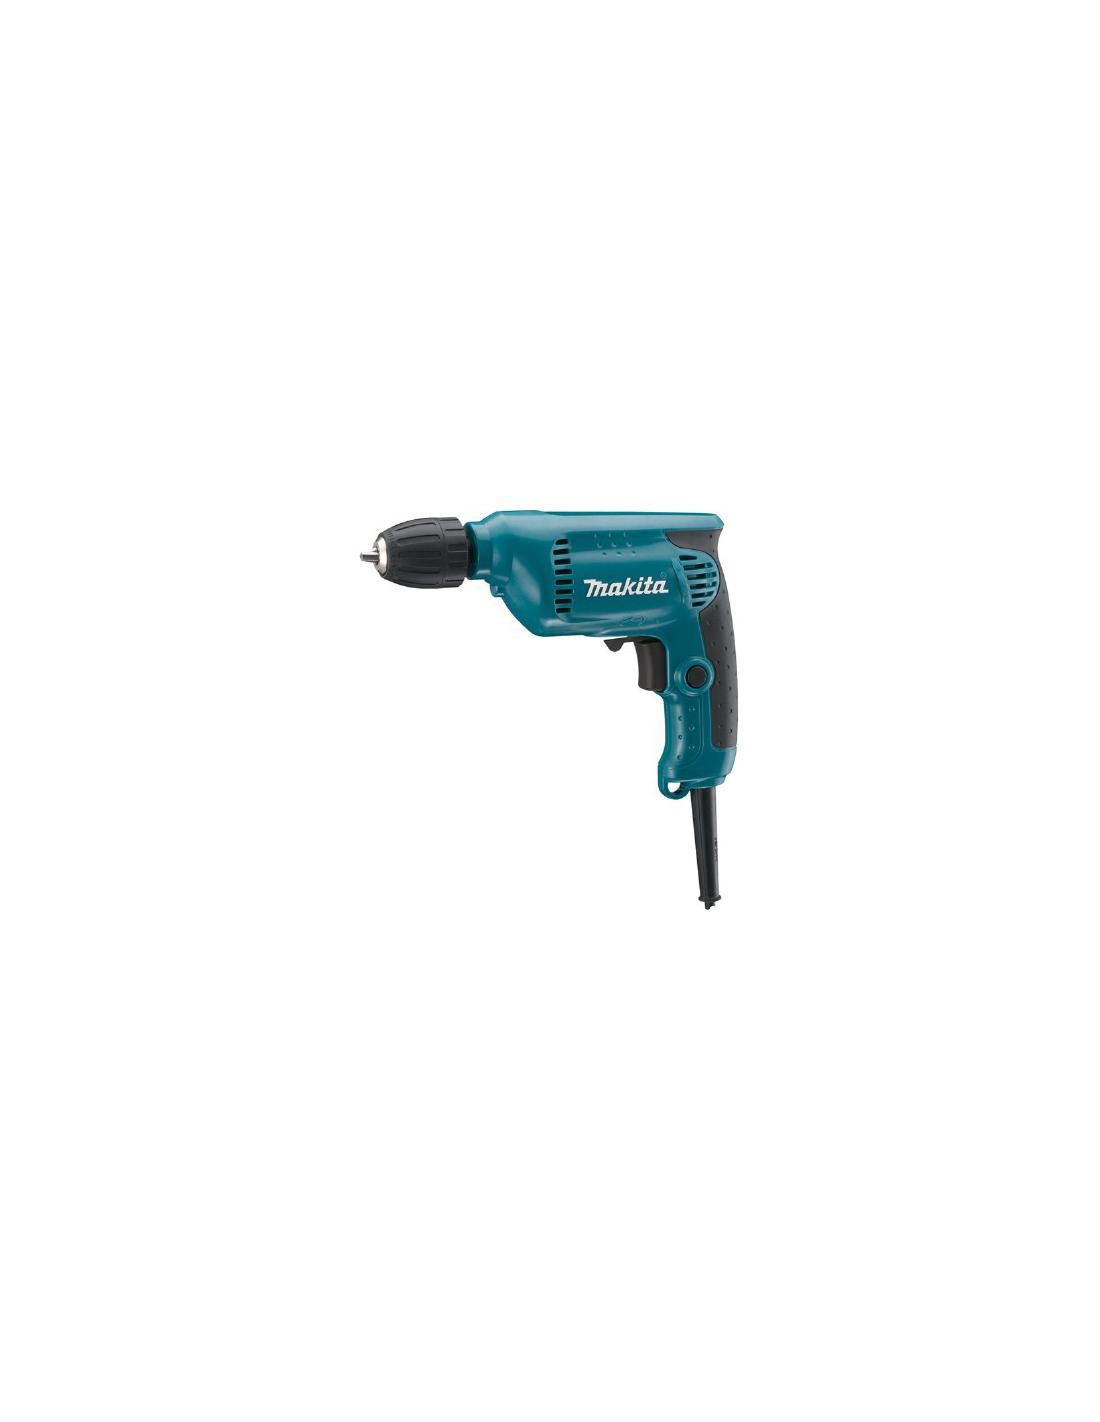 PERCEUSE 450 W 10 MM MAKITA - 1